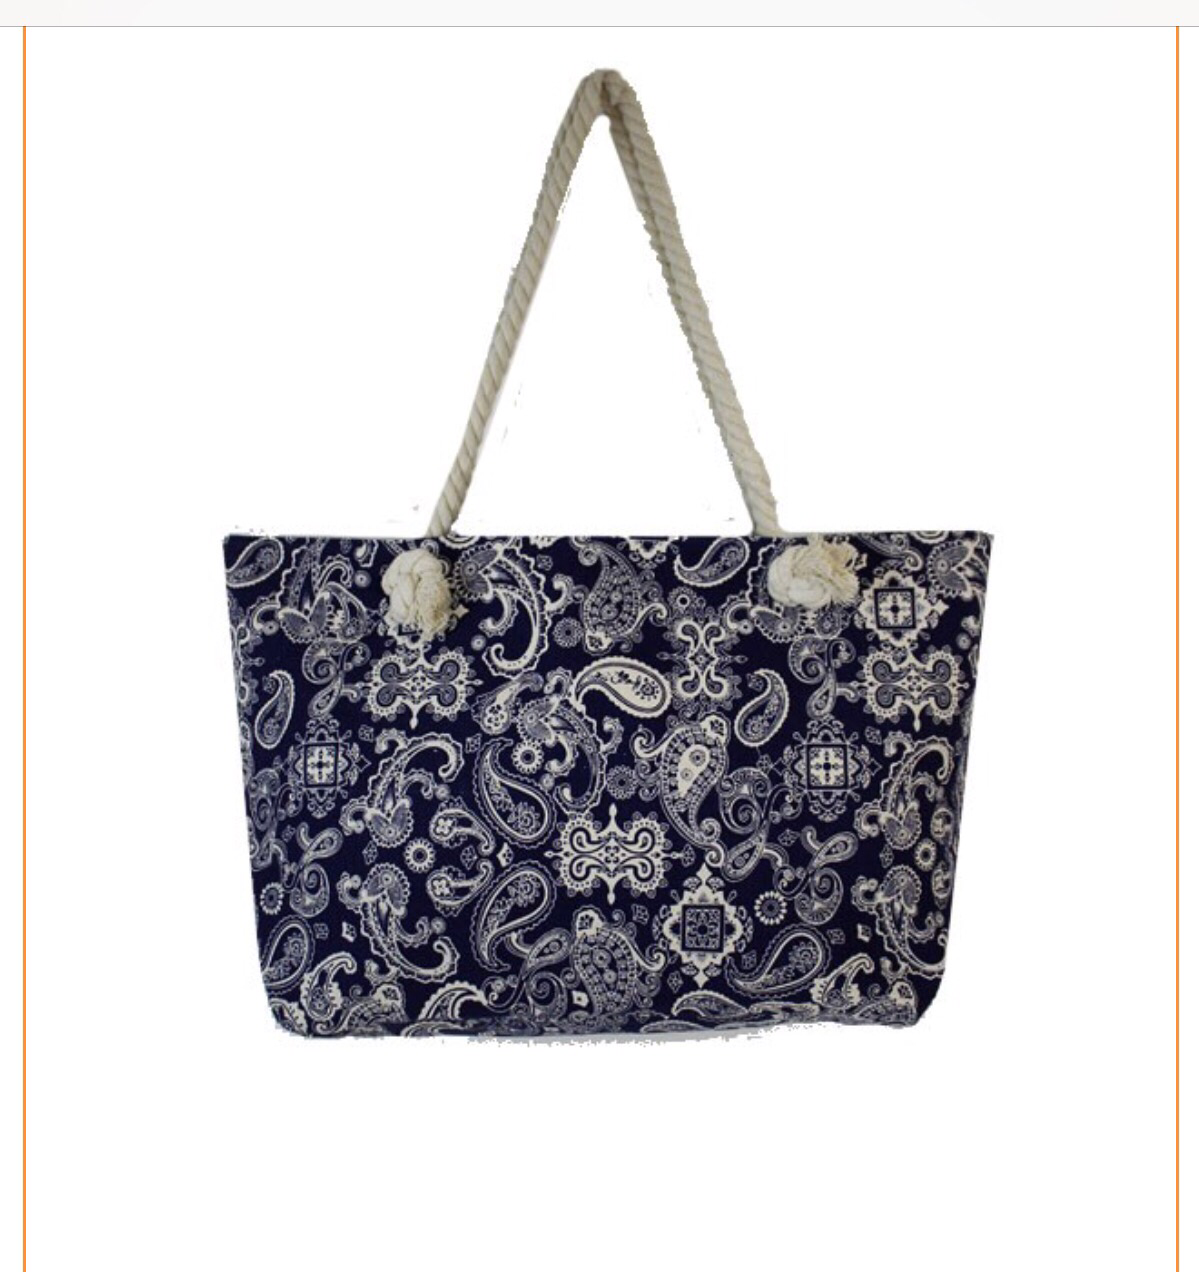 Navy and a White Paisley bag